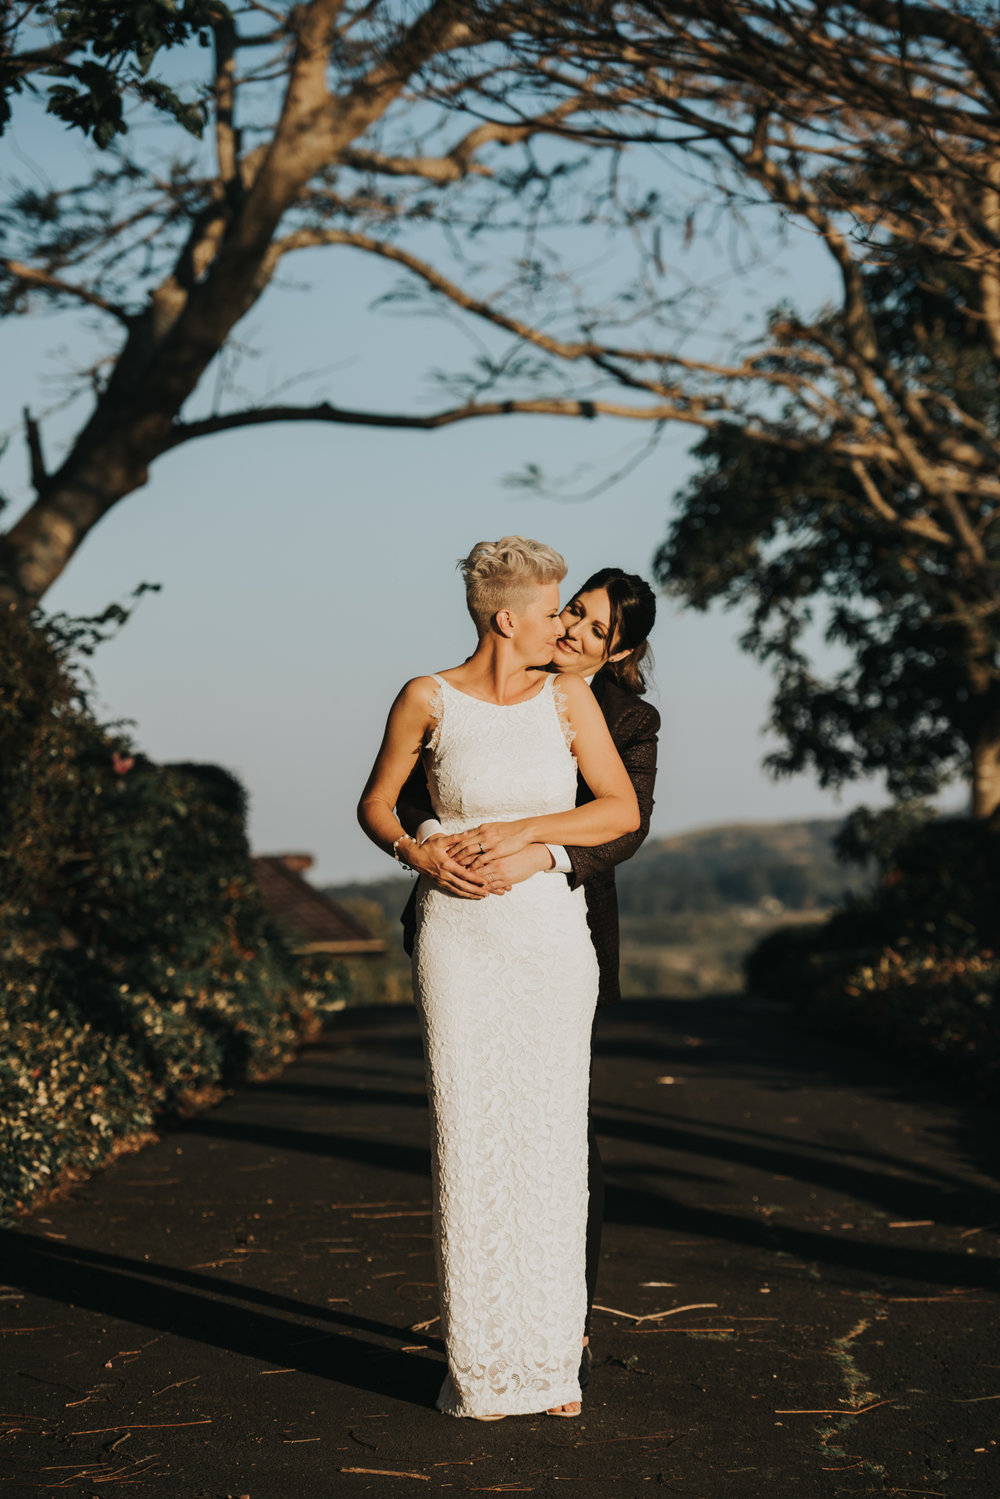 Byron Bay Wedding Photography | Brisbane Photographer-72.jpg